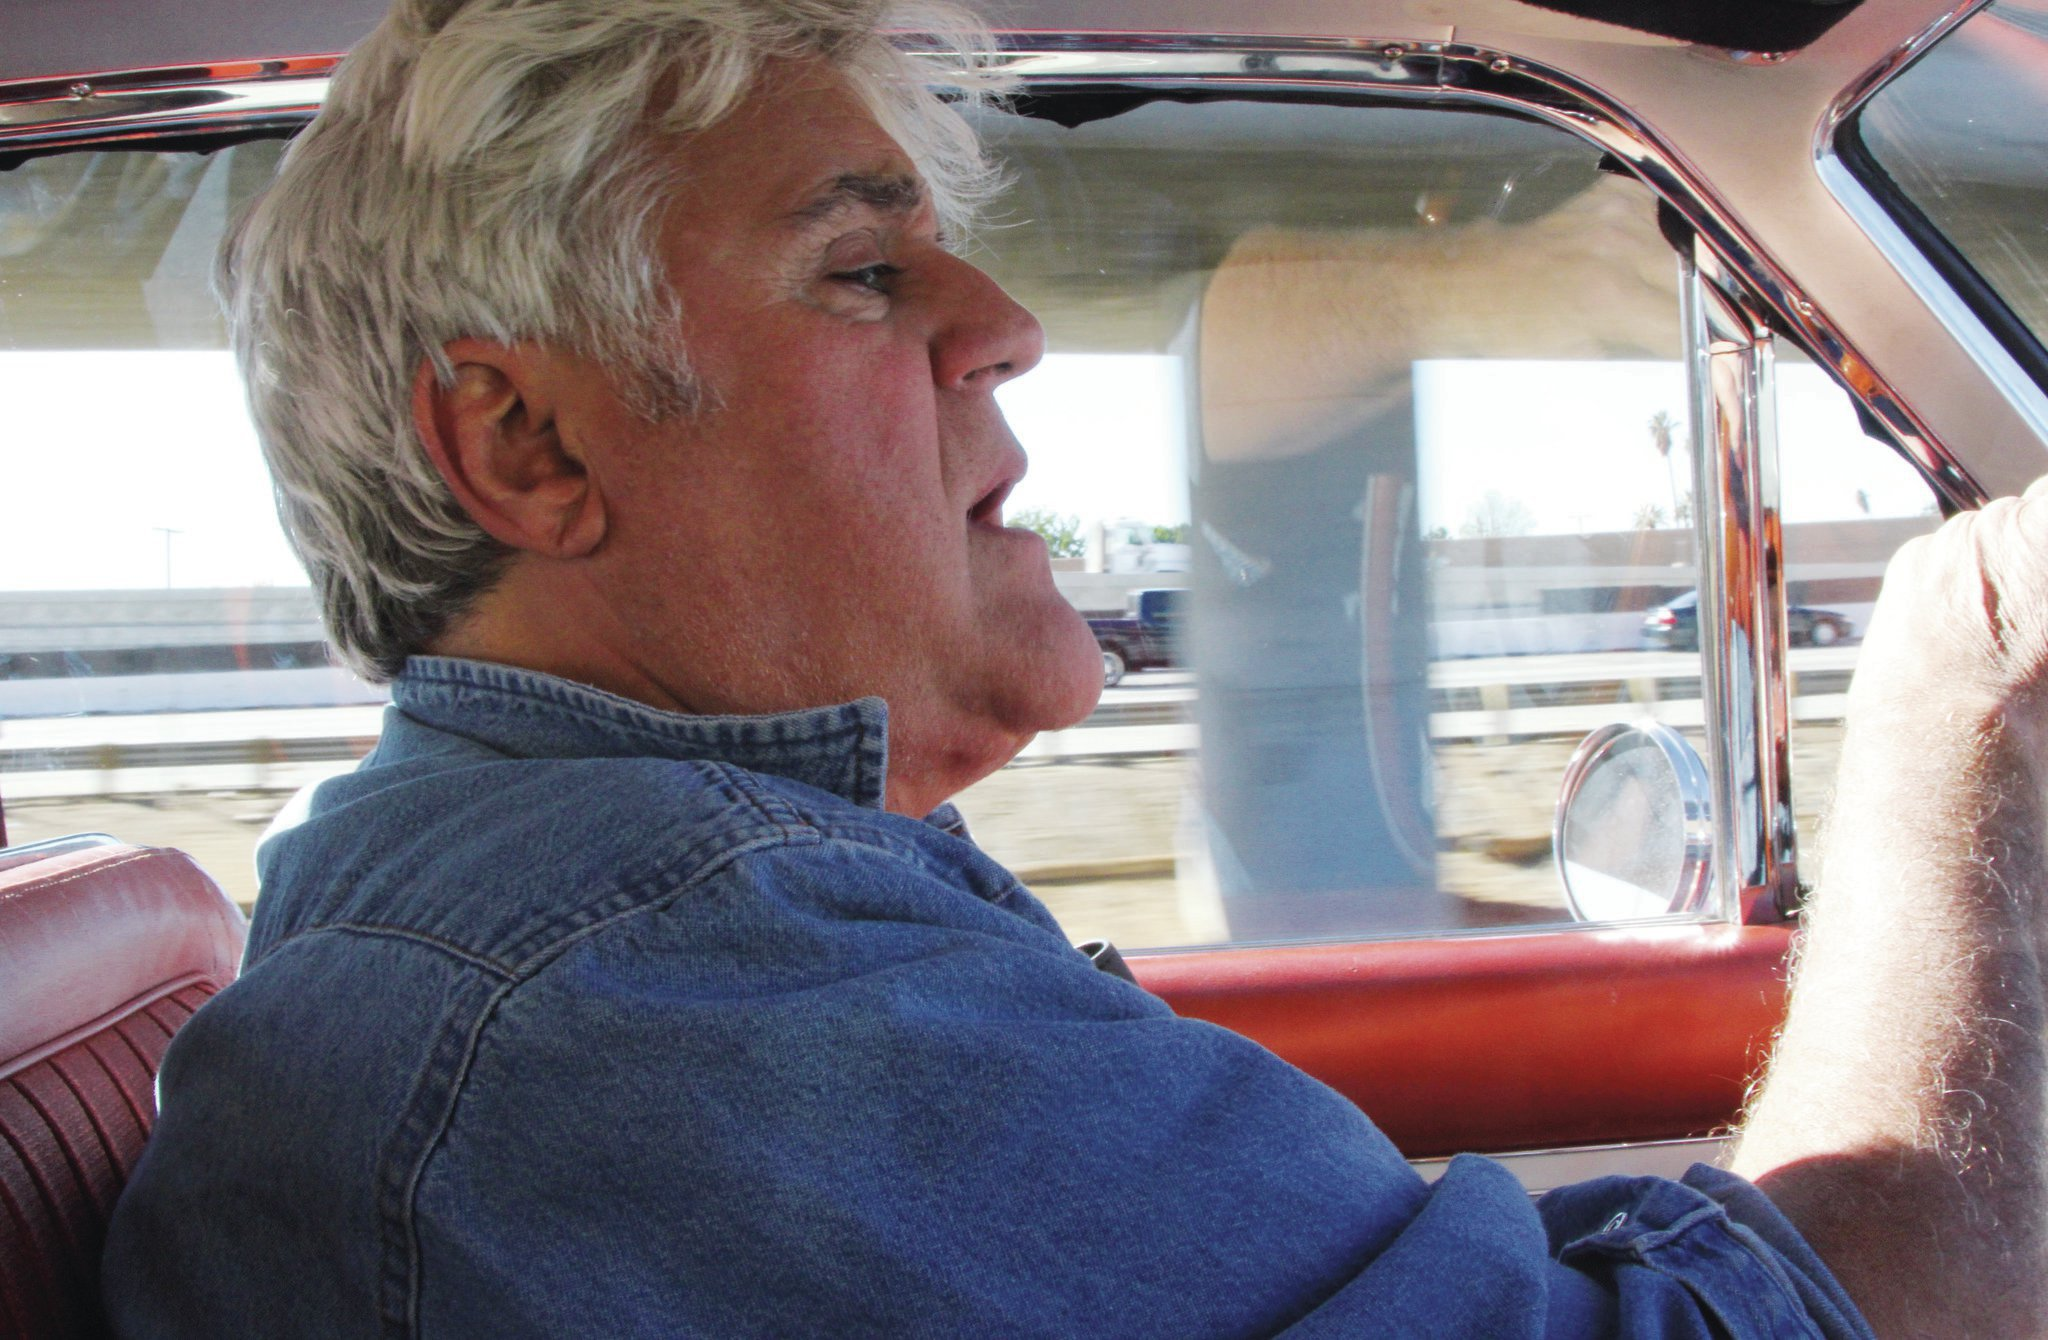 Jay Leno's team keeps his Chrysler turbine car in perfect driving condition.